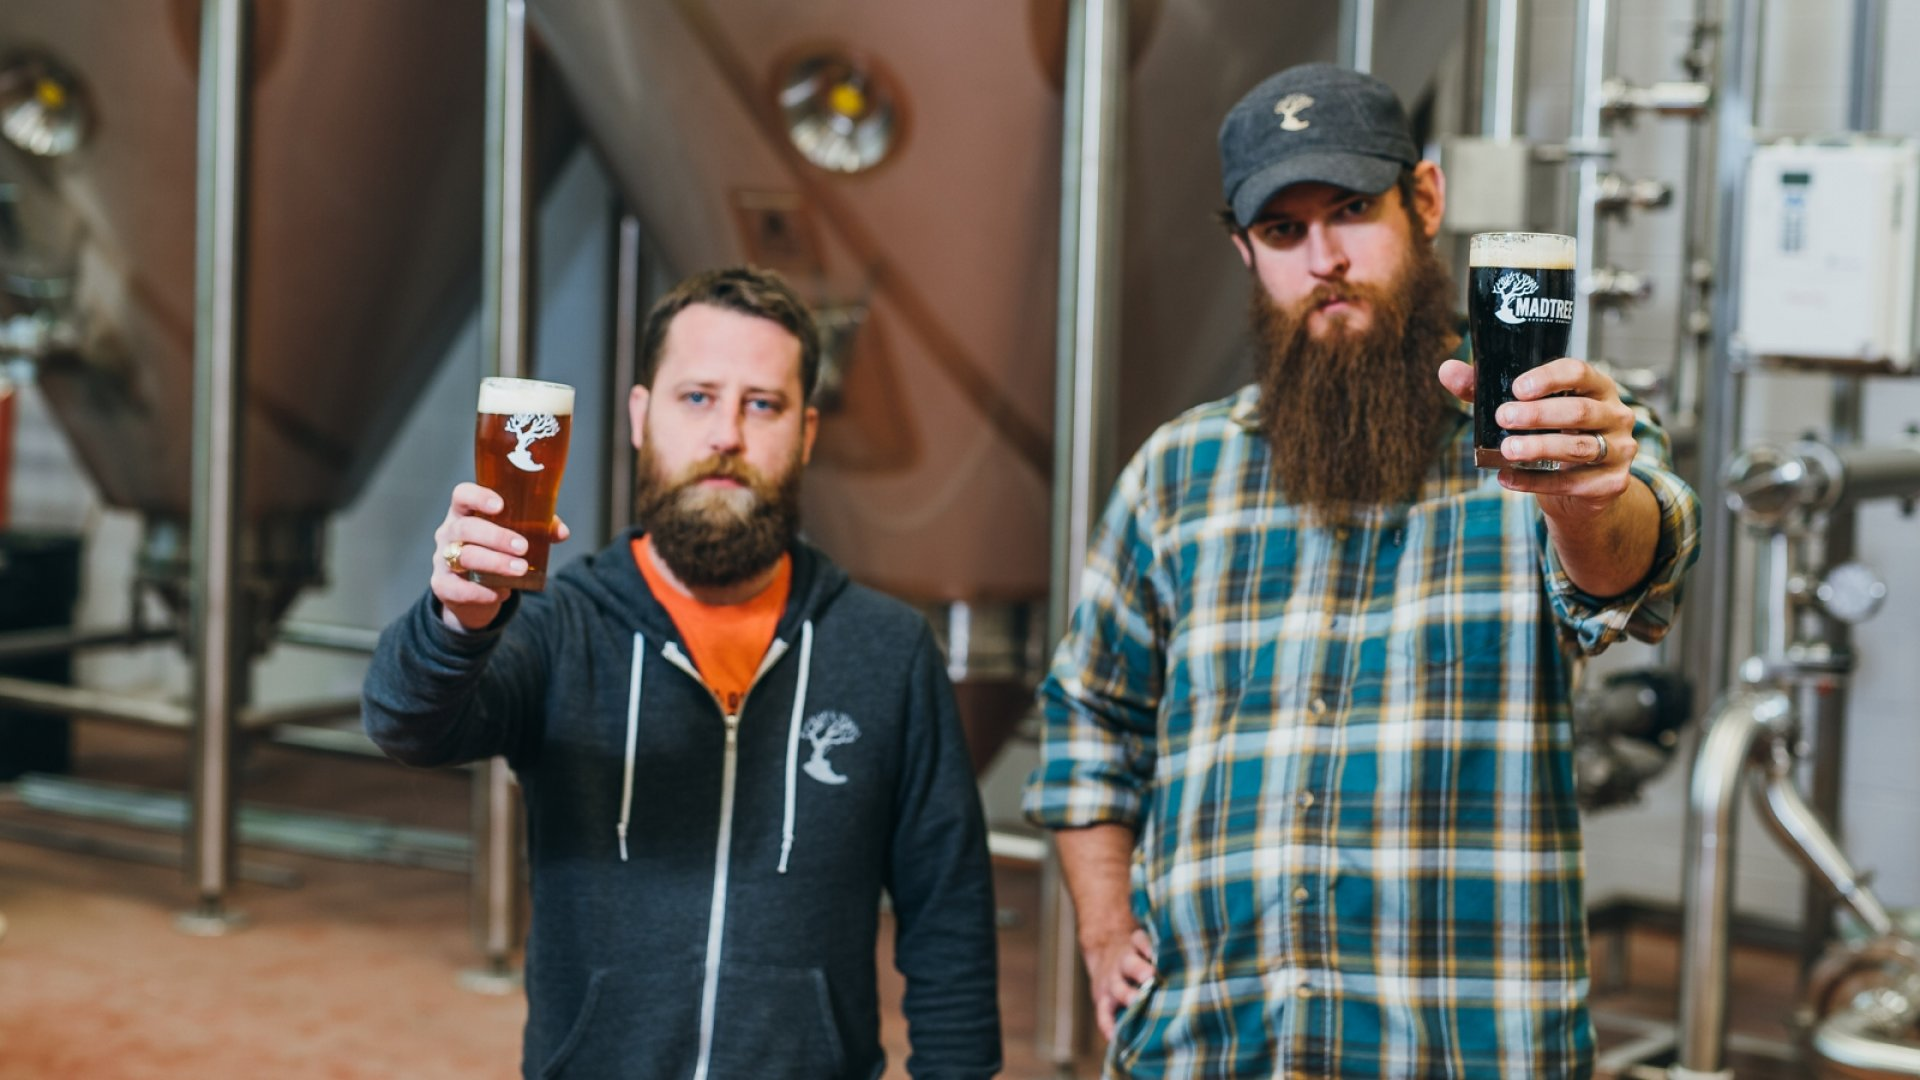 Brady Duncan and Kenny McNutt of MadTree Brewery in Cincinnati, OH.